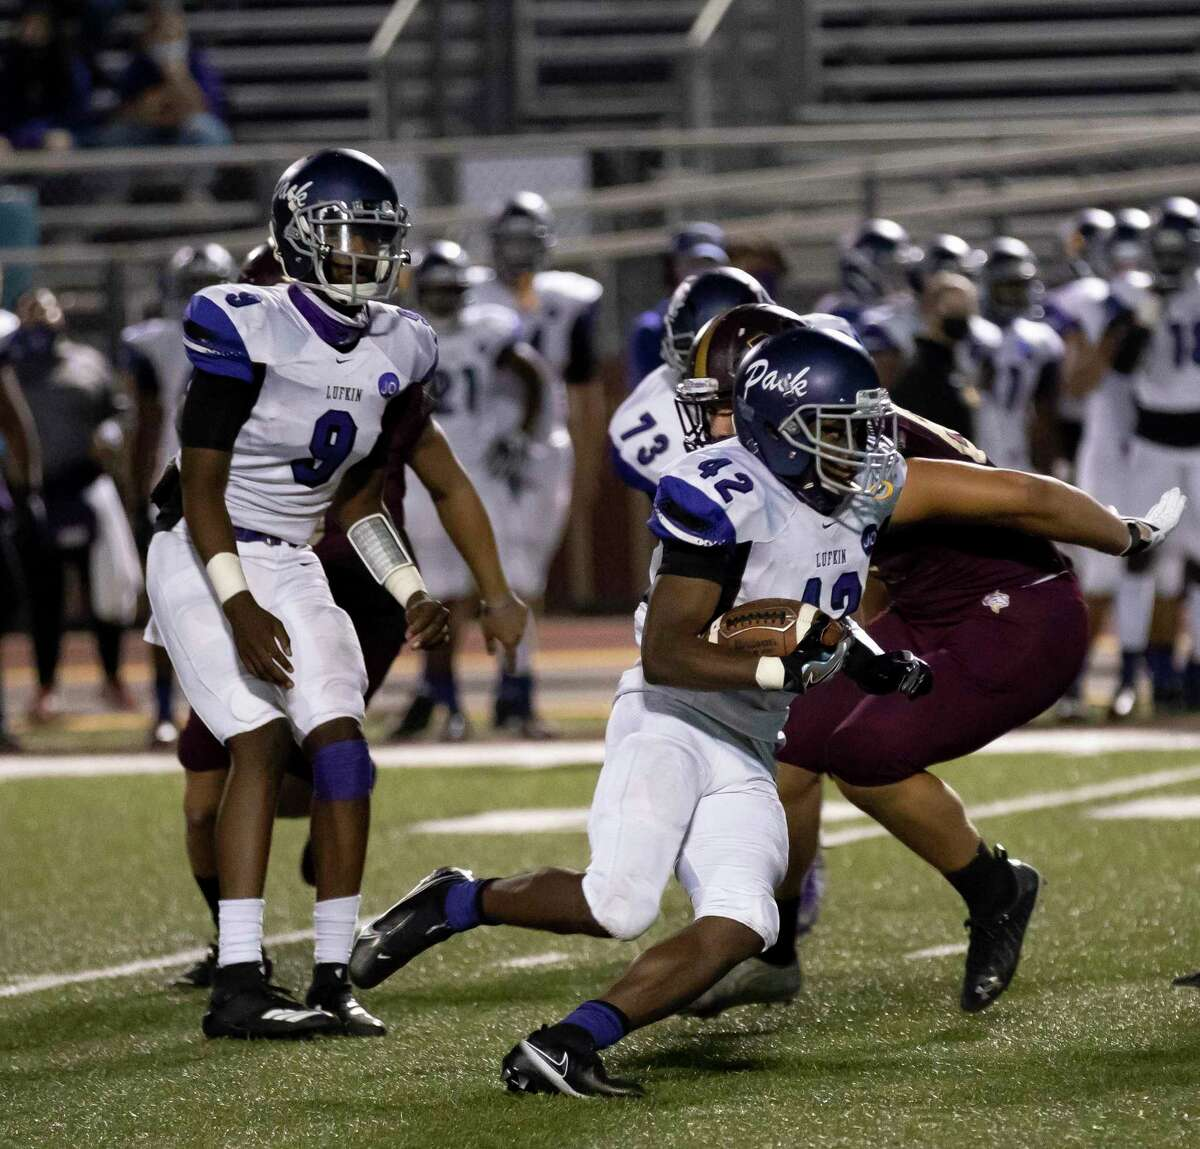 Lufkin running back Justavian Fann (42) runs the ball down the field before being tackled by Magnolia West defensive line Hayden Jansky (89) during the third quarter of a District 8-5A (Div. I) play at Mustang Stadium in Magnolia, Friday, Oct. 9, 2020.